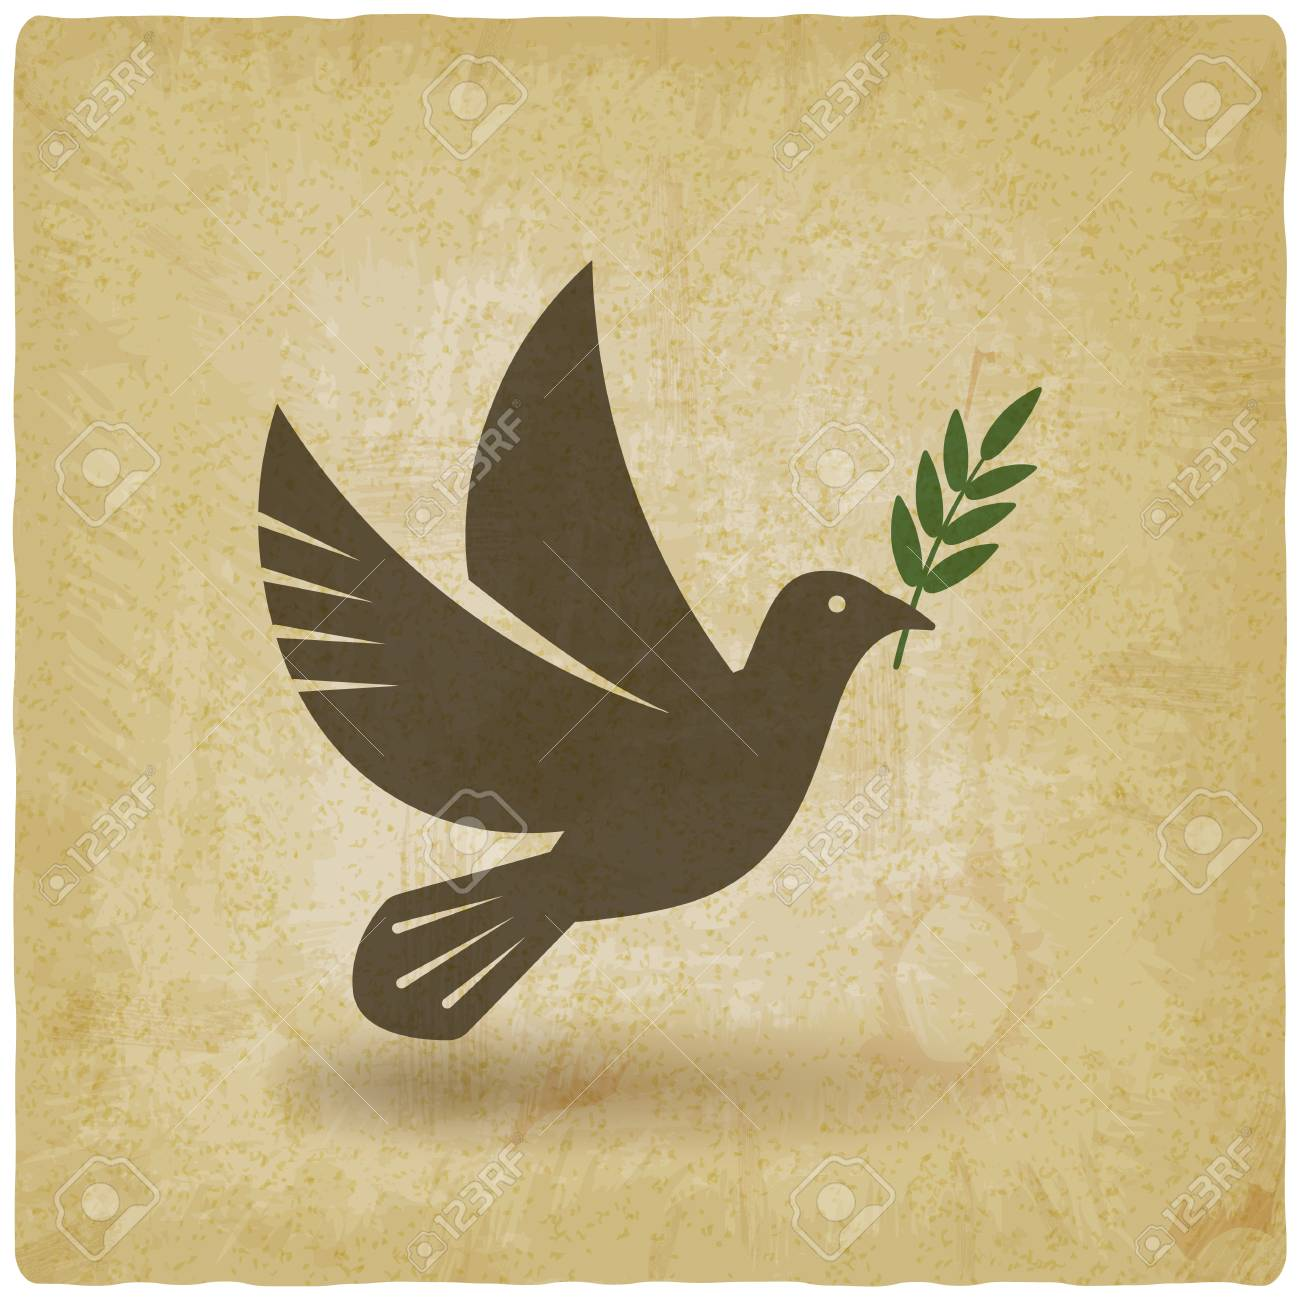 Dove With Olive Branch Vintage Background Vector Illustration Royalty Free Cliparts Vectors And Stock Illustration Image 113441555